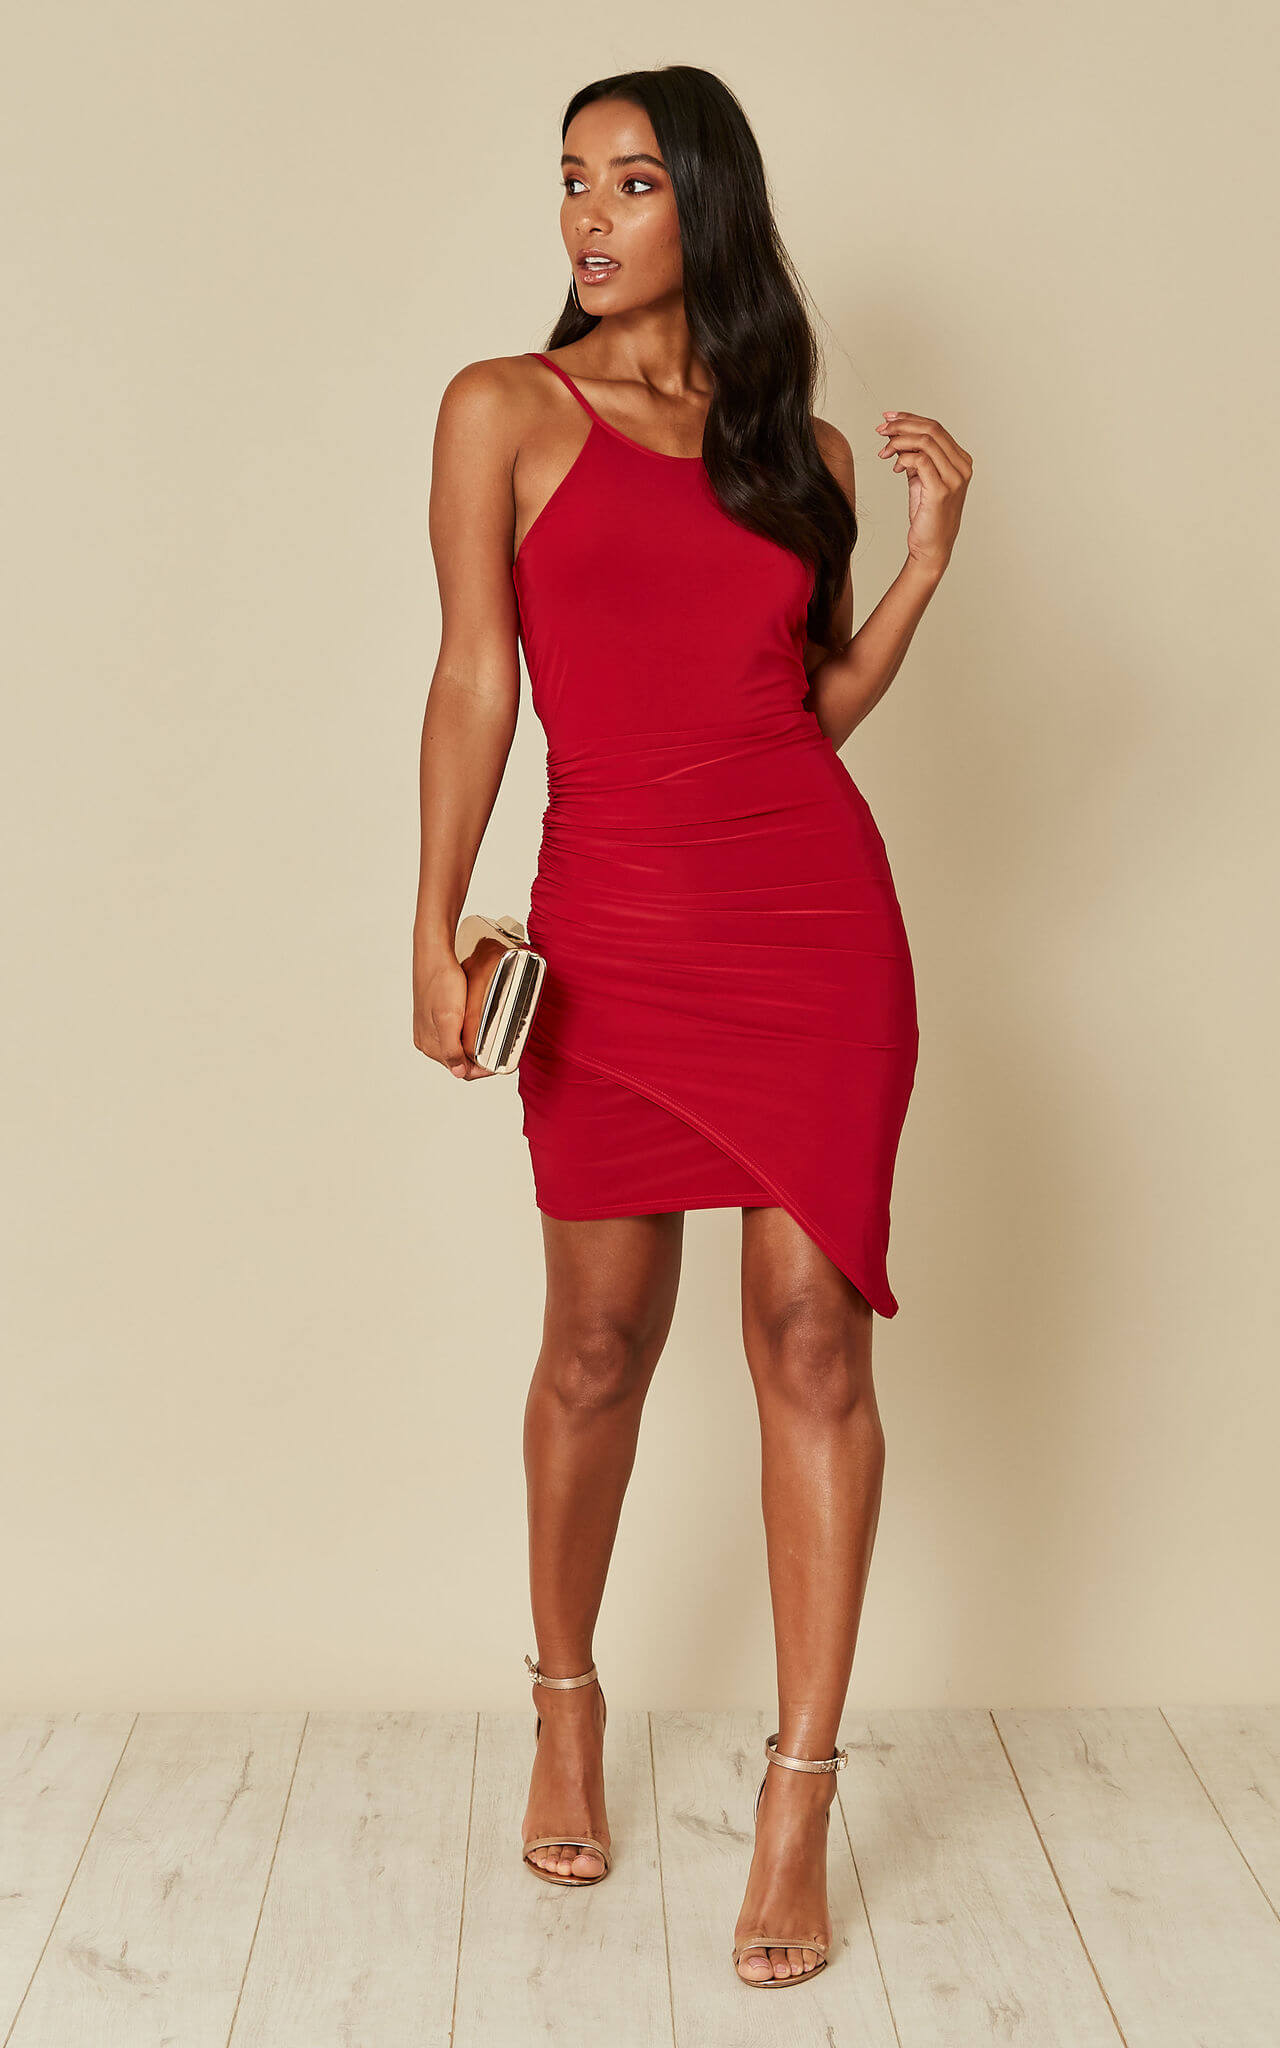 Model wears a red bodycon mini dress